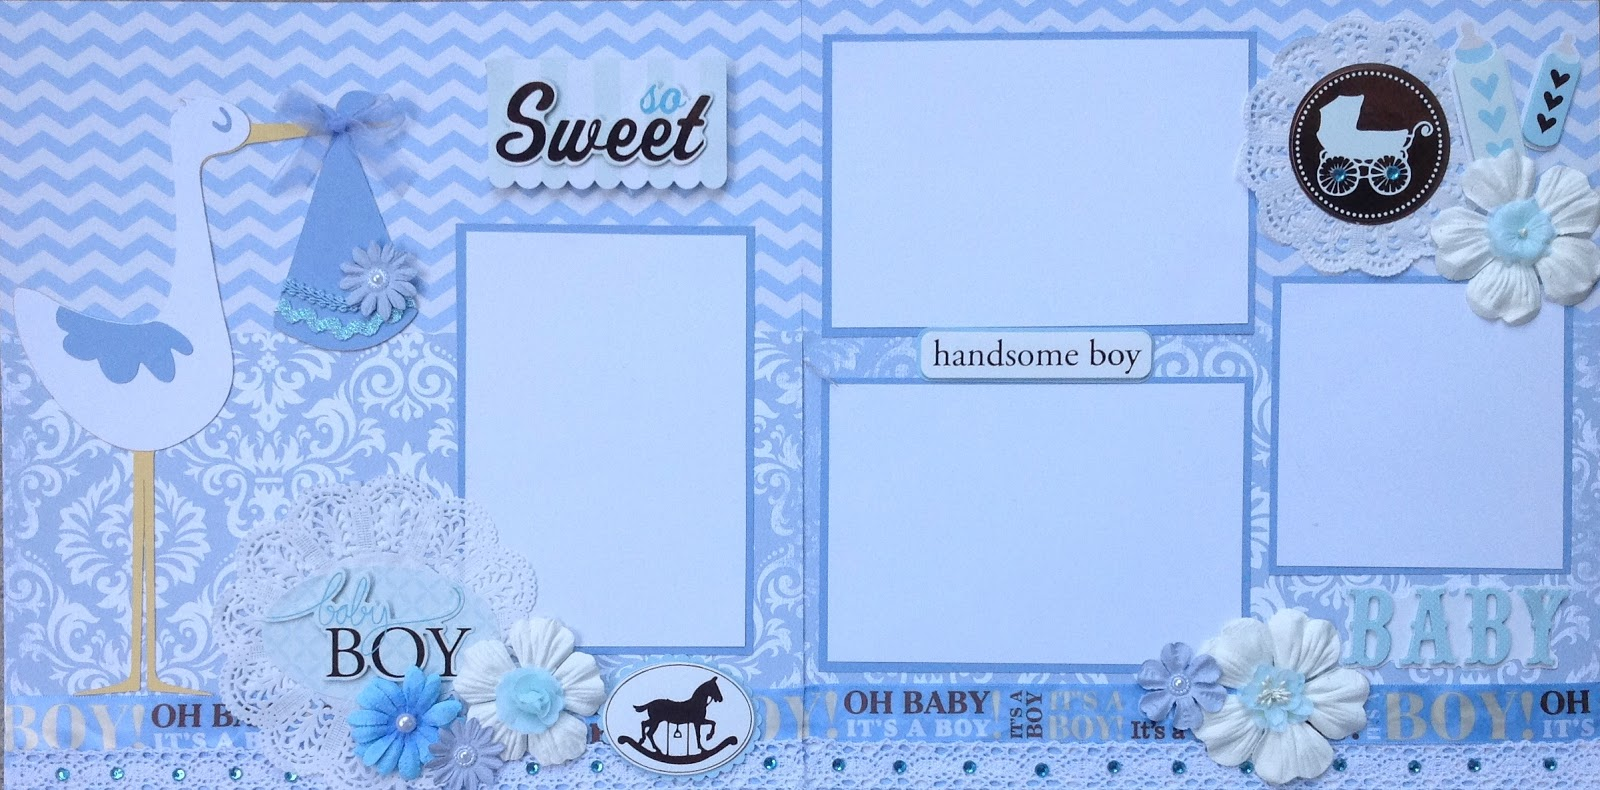 AMAZING GRACE Paper Crafts: Baby Boy and Brothers